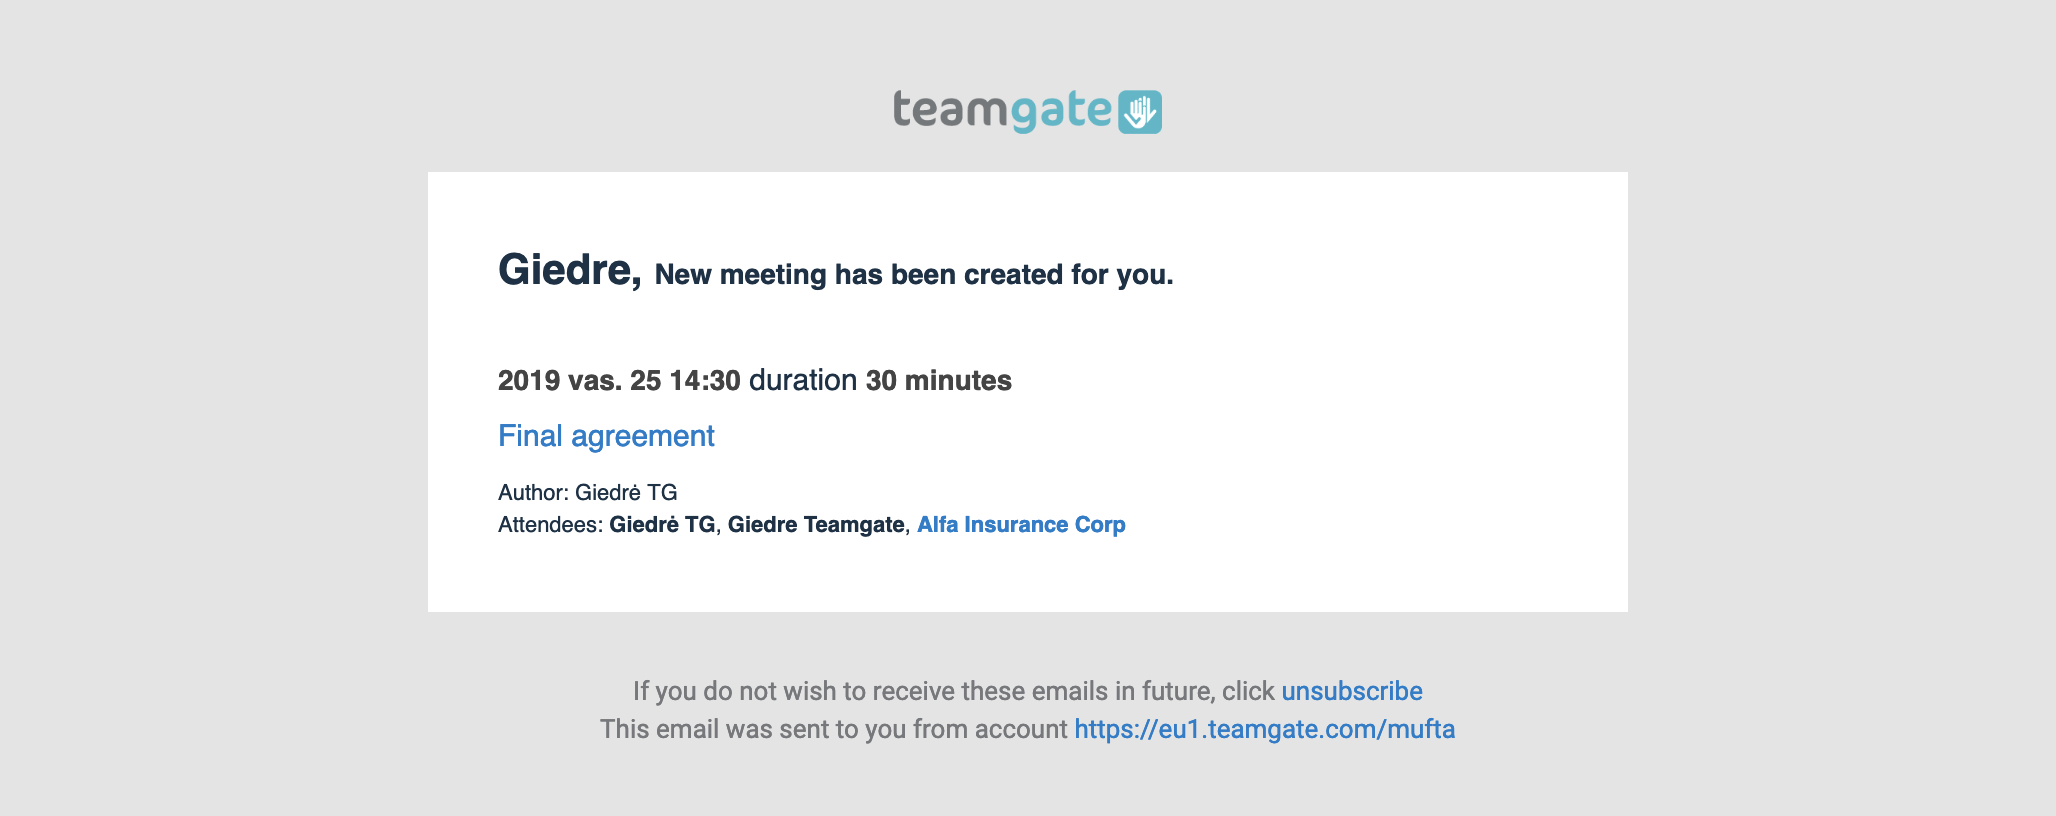 Invitation-to-a-meeting-notification-Teamgate-CRM.png